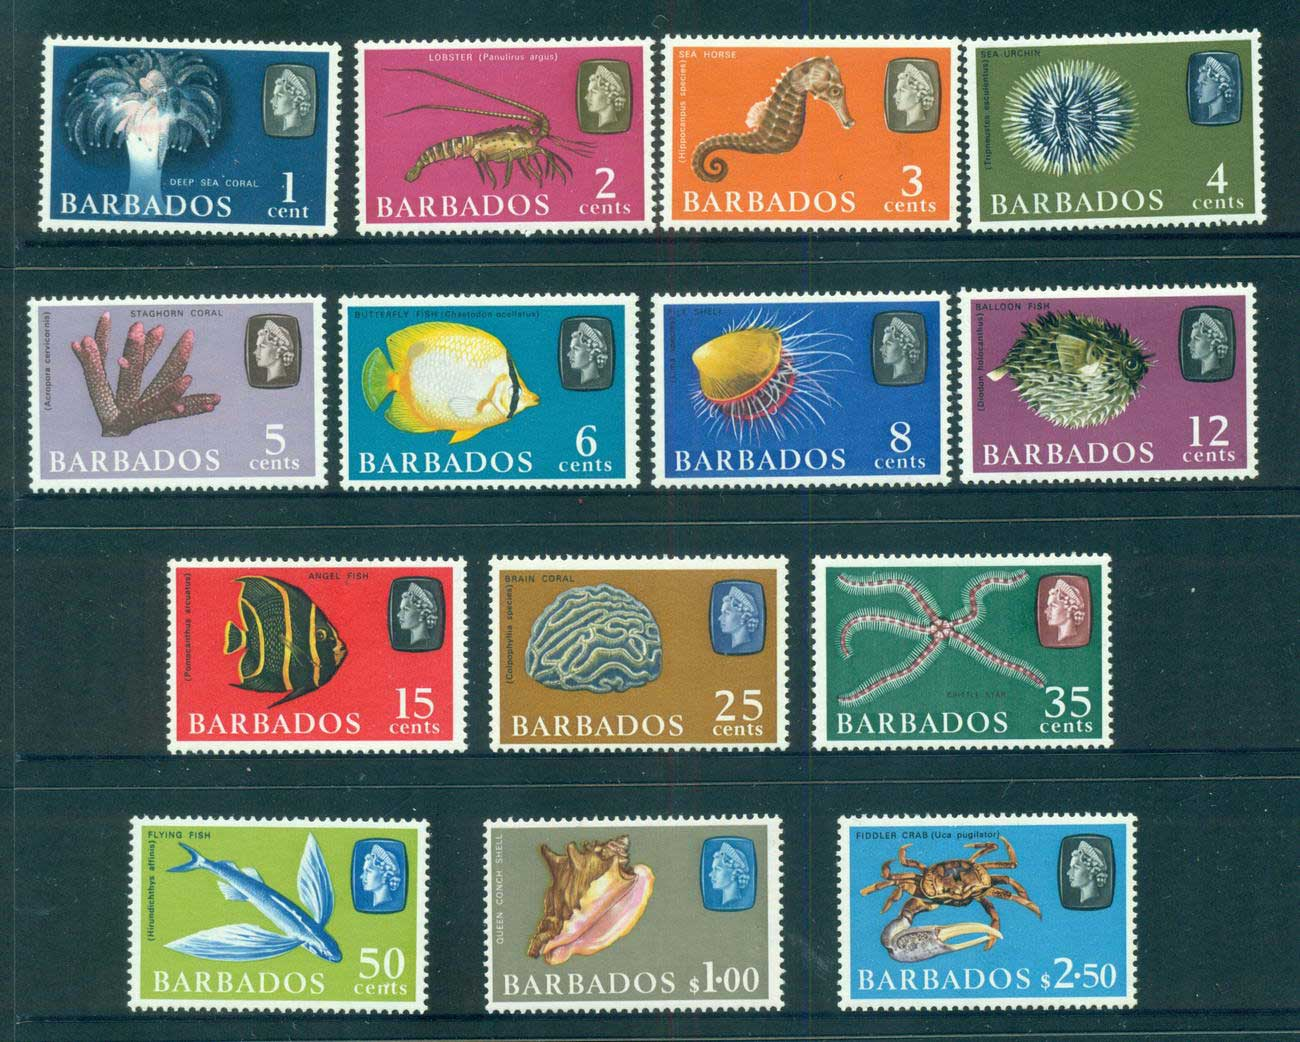 Barbados 1965 Fish Defins Wmk Upright MLH lot55080